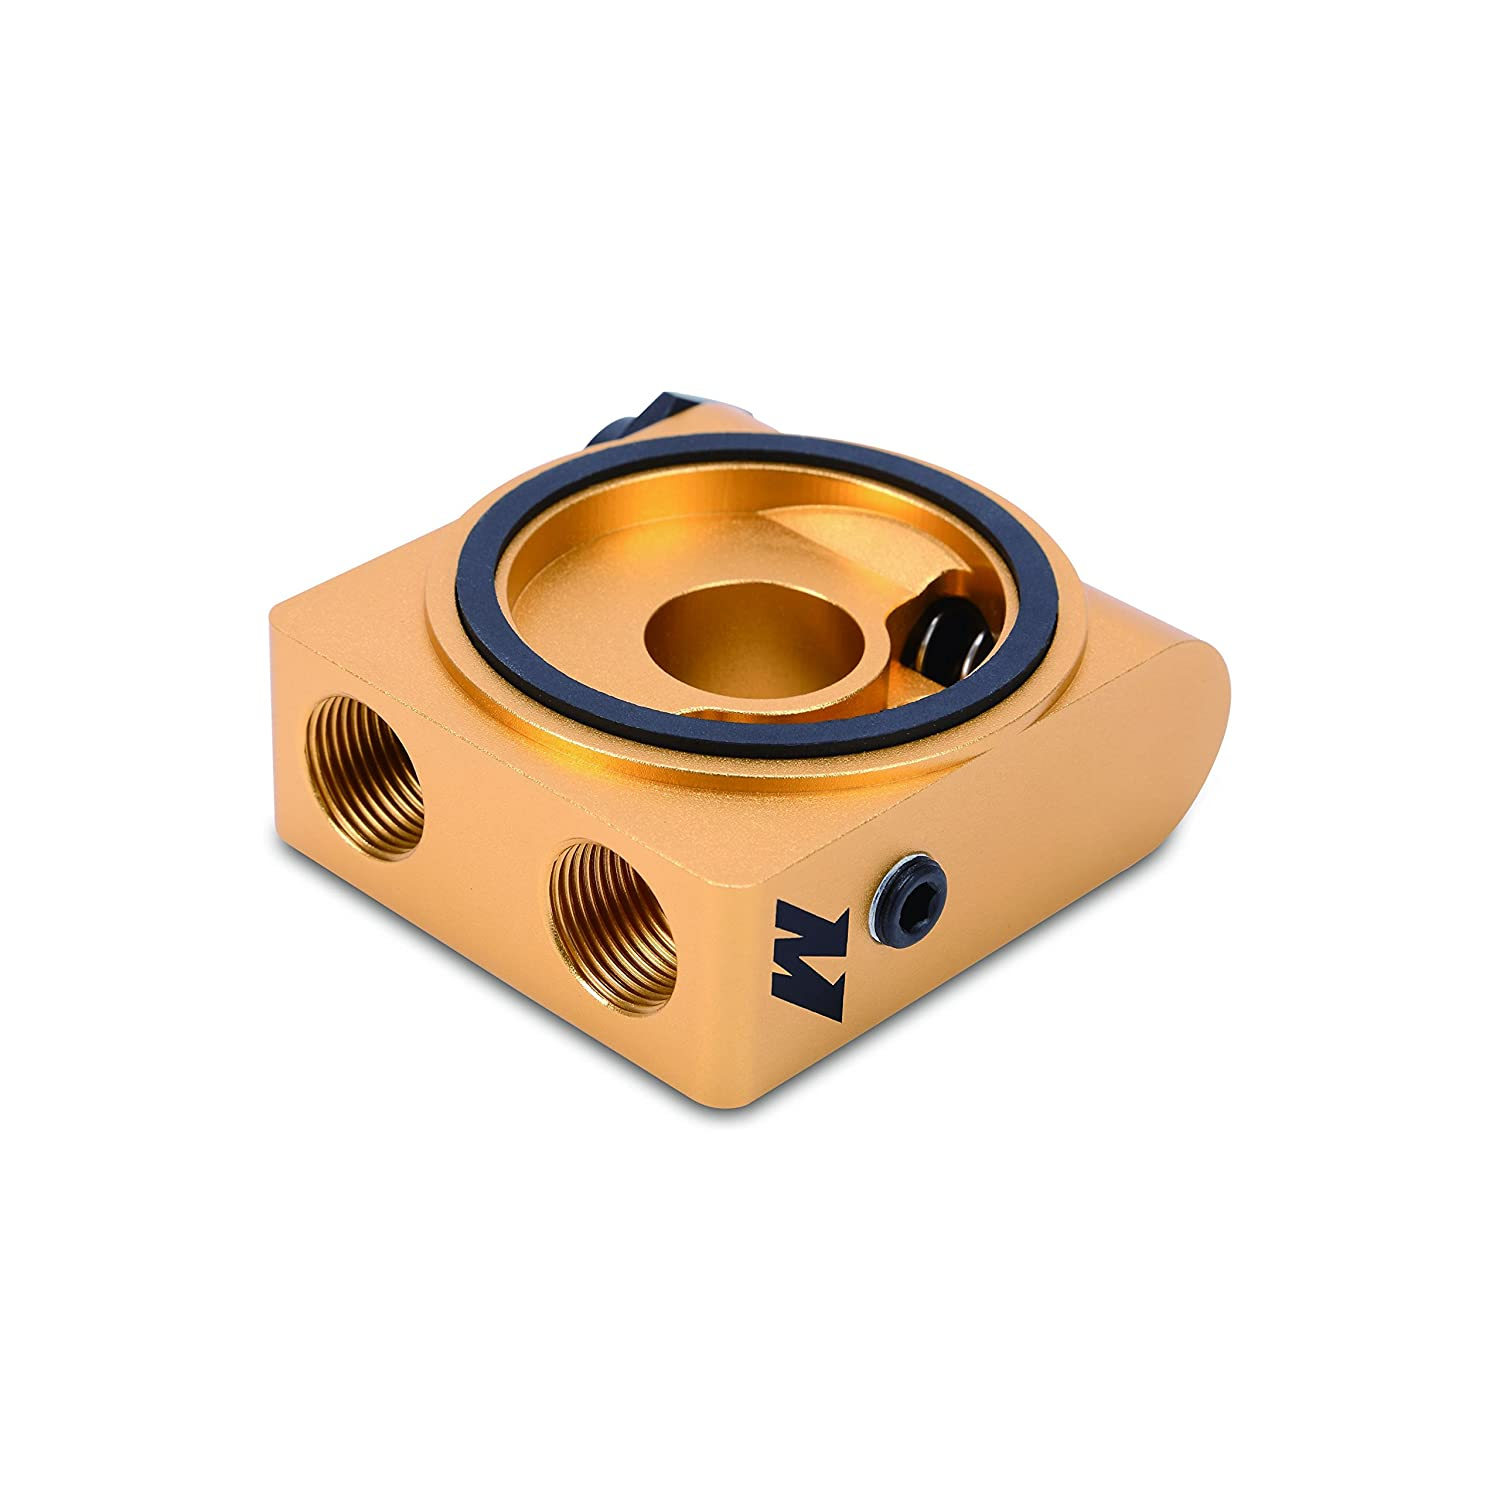 Mishimoto (MMOP-SPTR) Gold Oil Sandwich Plate with Rear-Mounted Thermostat